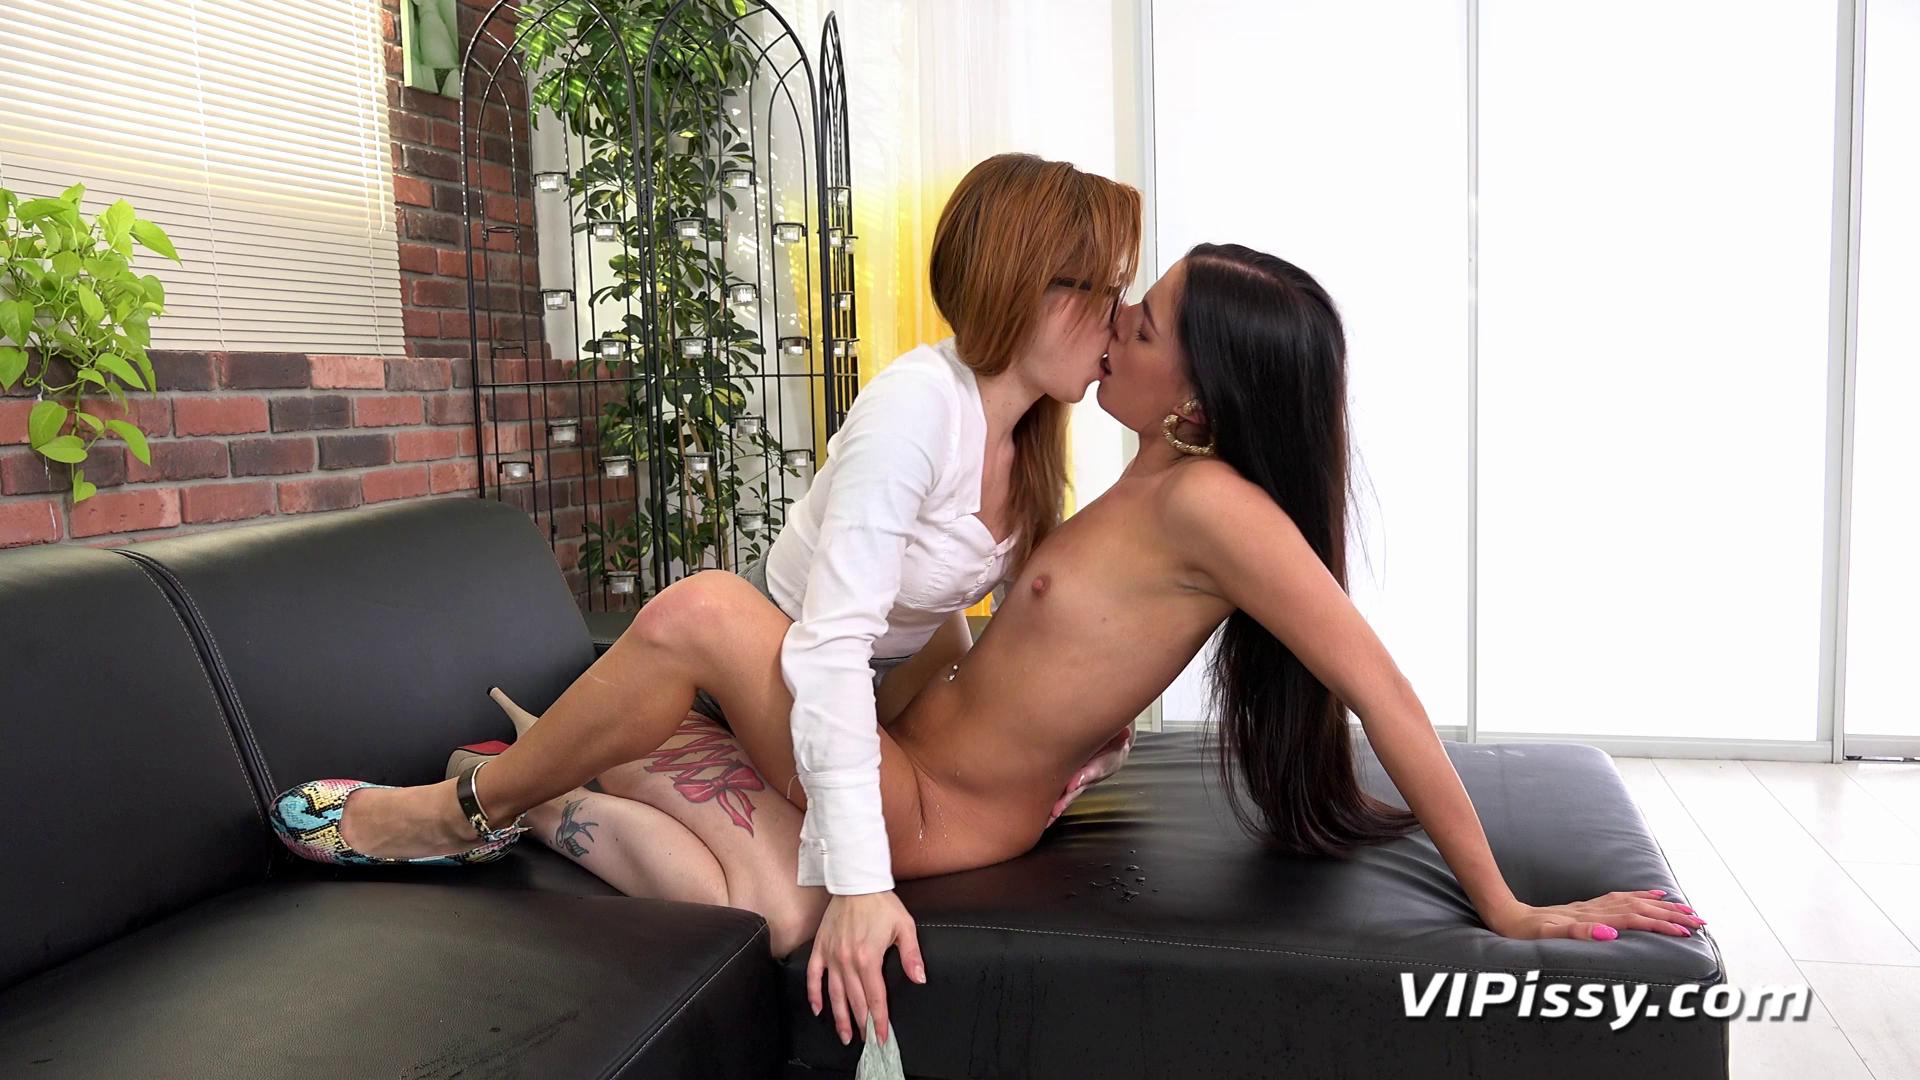 VIPissy – Doroty And Foxie T